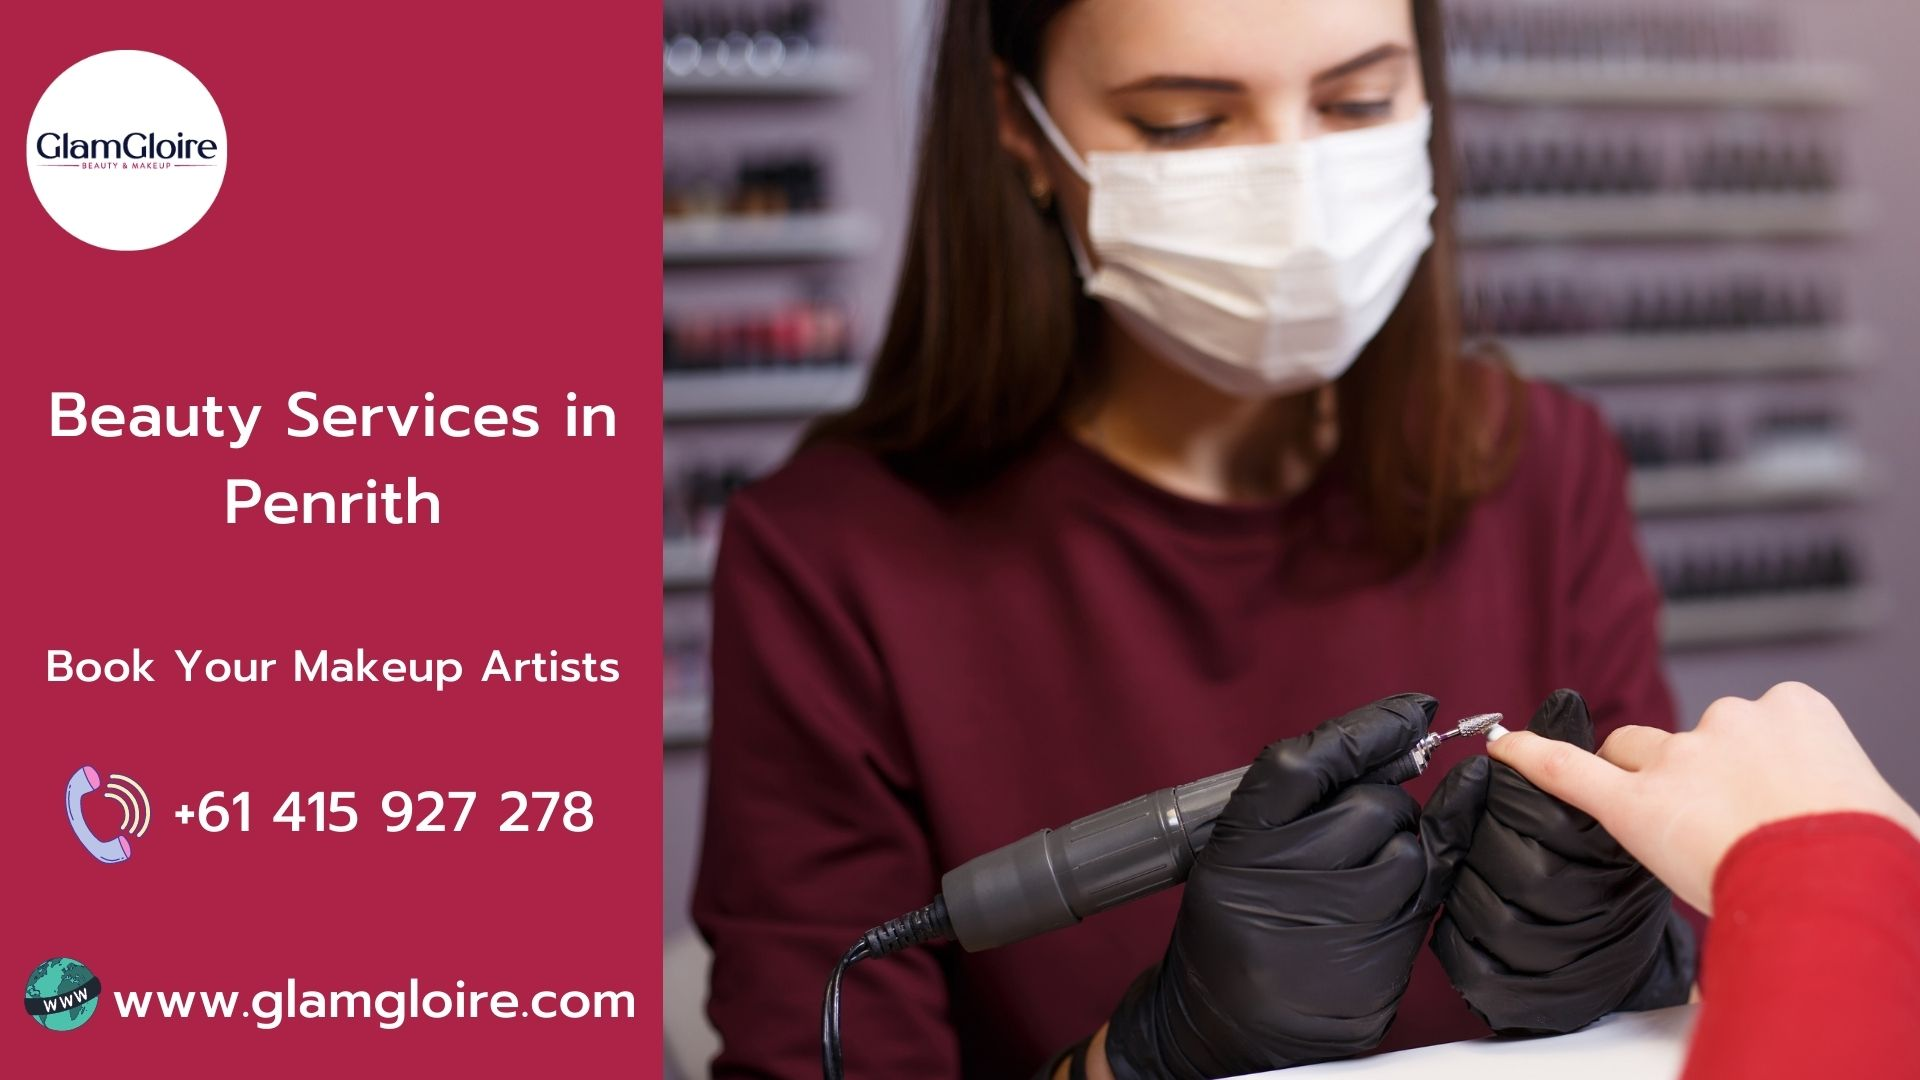 Best Beauty Services in Penrith | GlamGloire